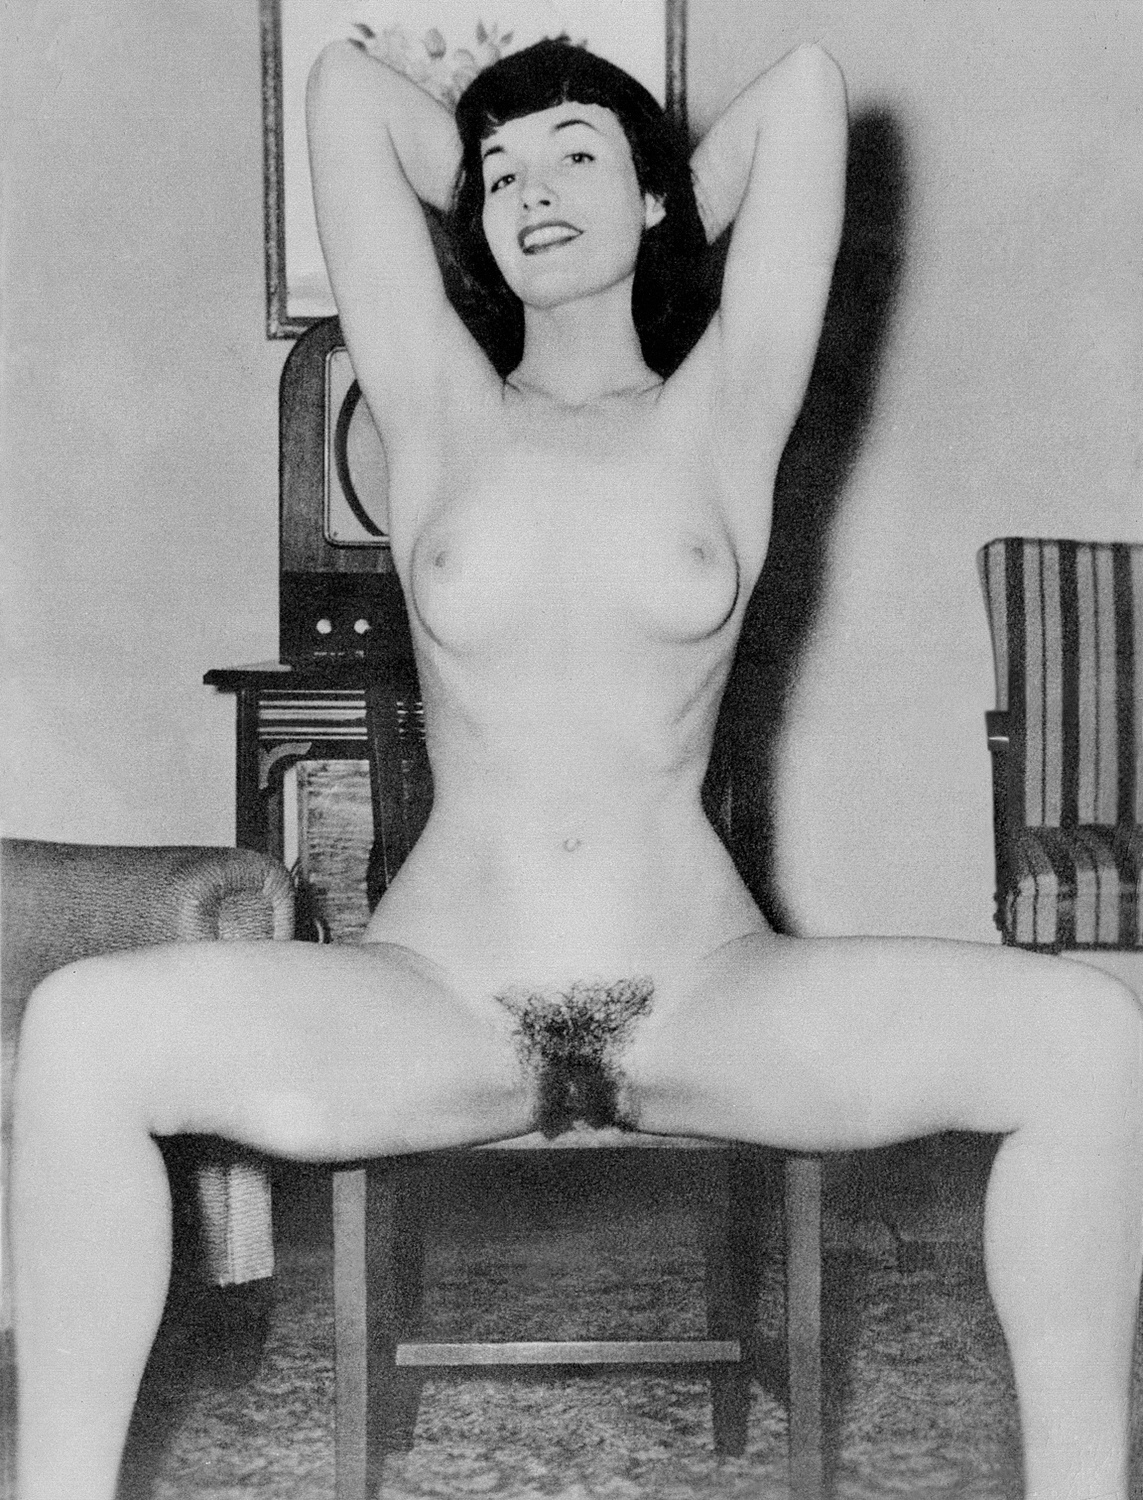 Betty white vintage nudes can consult